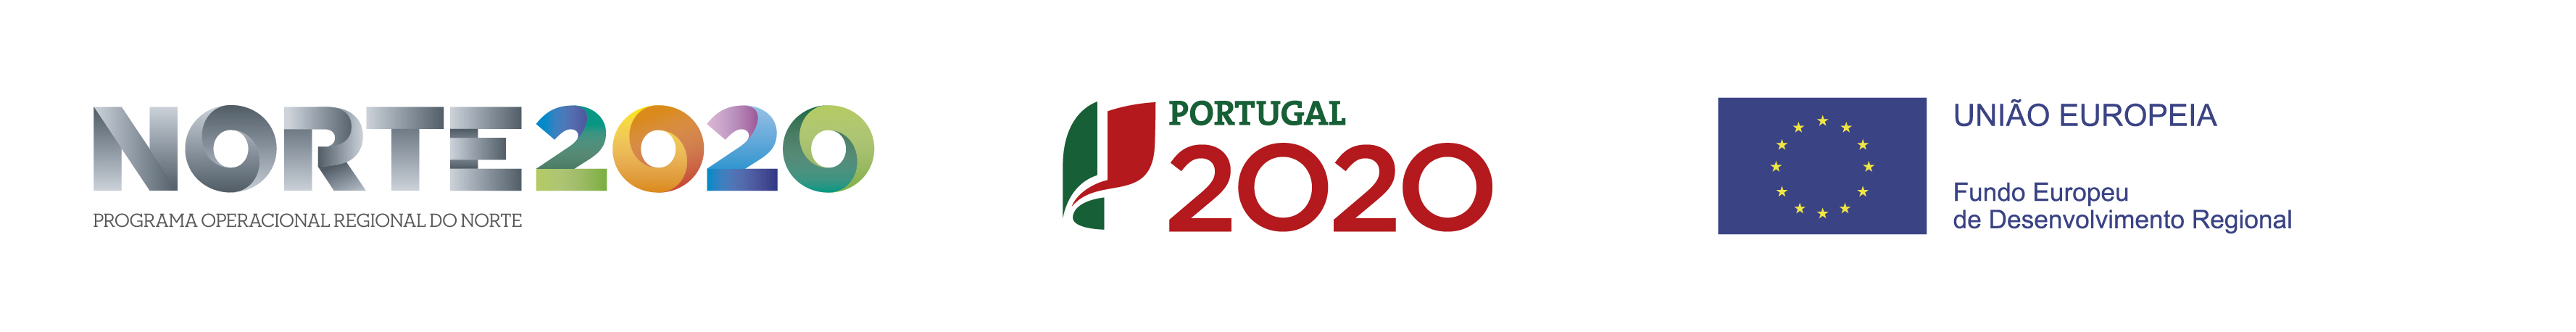 barra-assinaturas-norte-2020-feder.jpg